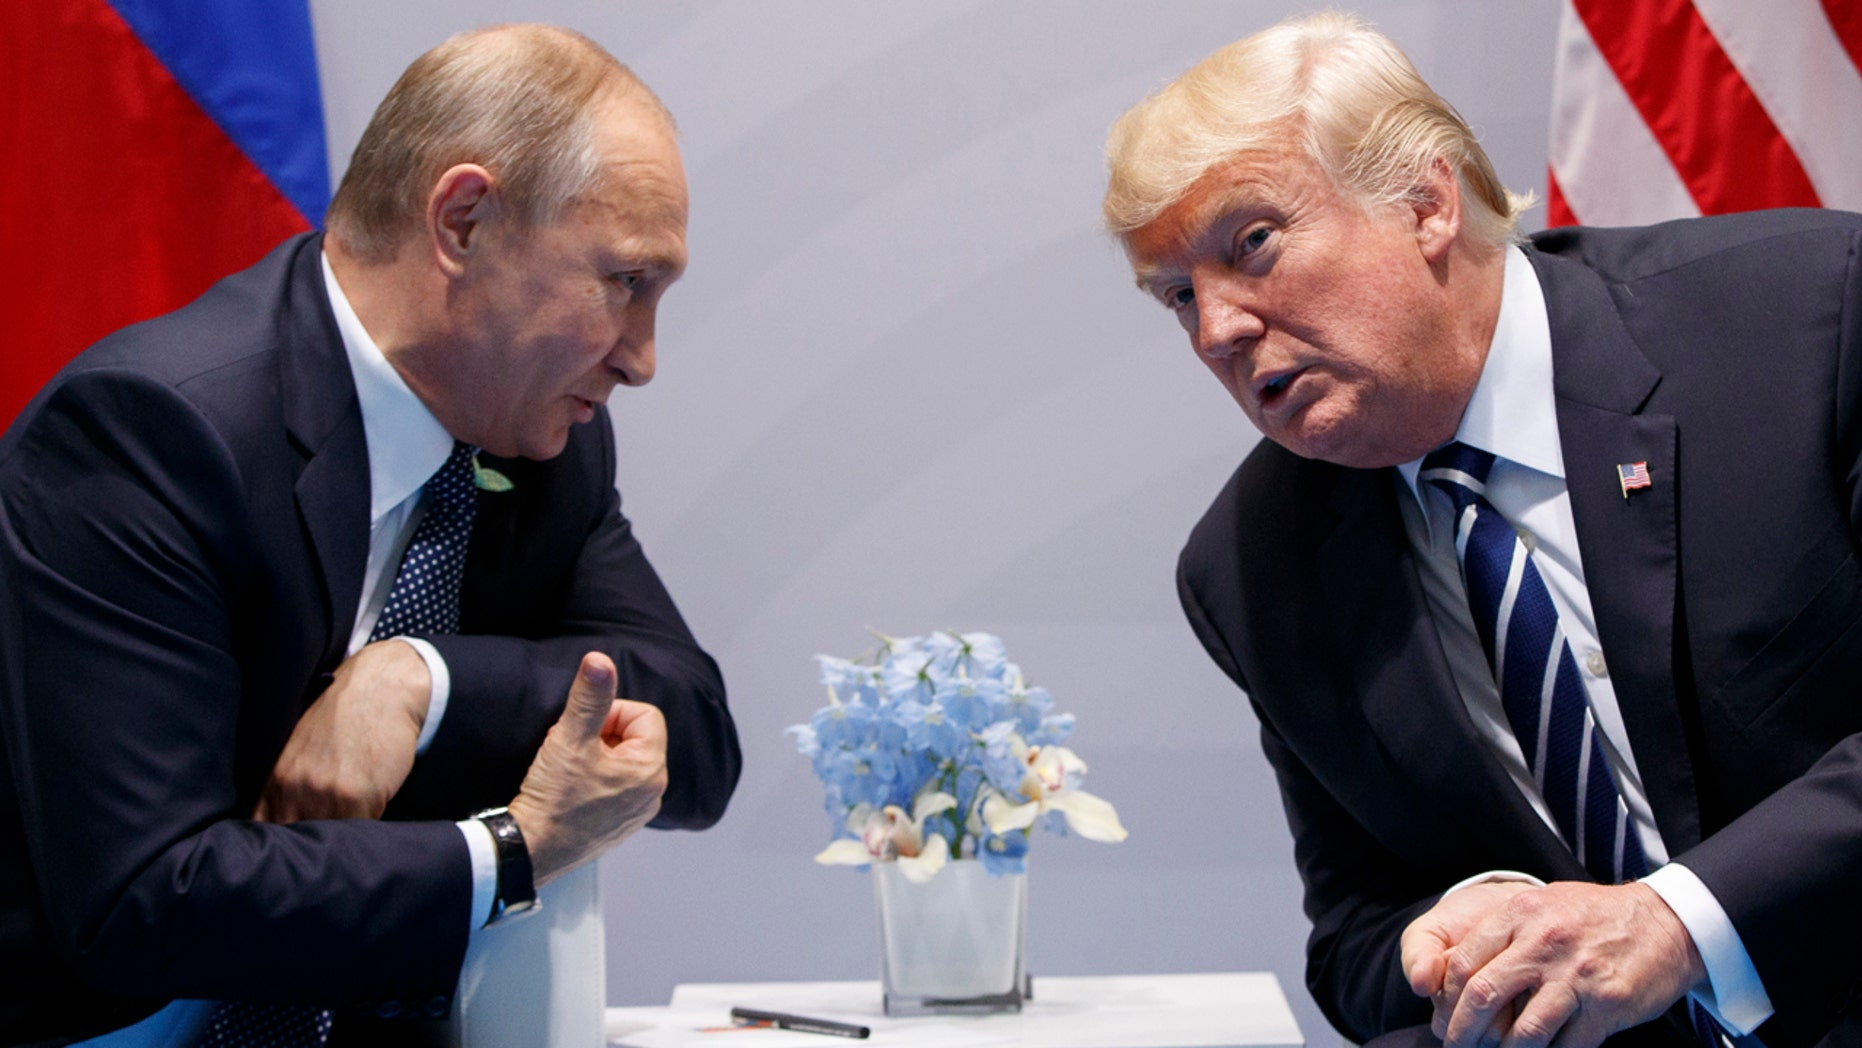 Trump and Putin have met twice before, during international summits last year in Germany and Vietnam.